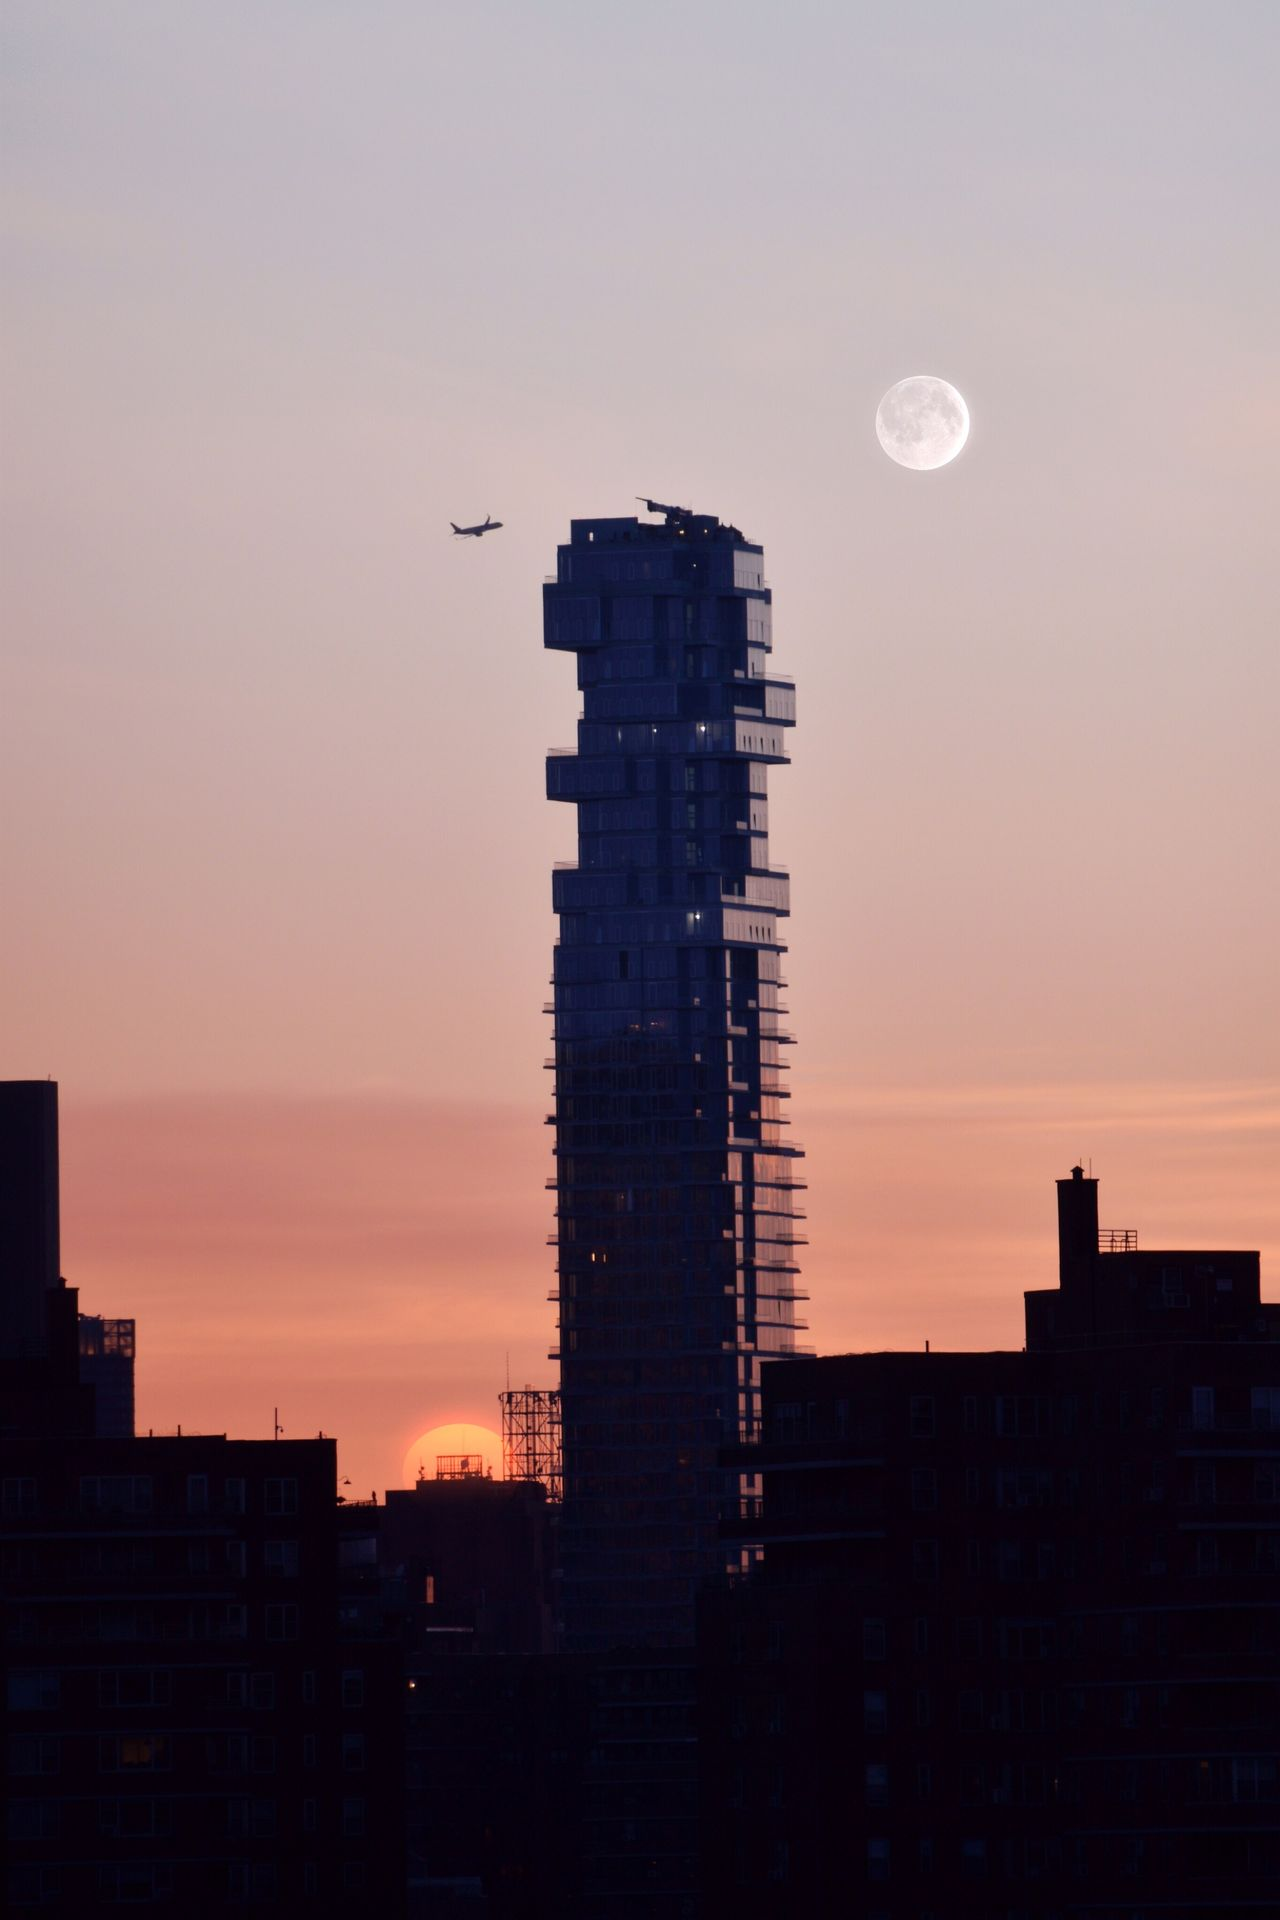 Moon Plane Plane And Moon Sunset Sunset Silhouettes Sunset_collection Jengatower 59leonard Moon Architecture Built Structure Building Exterior Skyscraper Dusk Sky Silhouette City Nature No People Beauty In Nature Outdoors Travel Destinations Scenics Crescent Low Angle View Modern Clear Sky